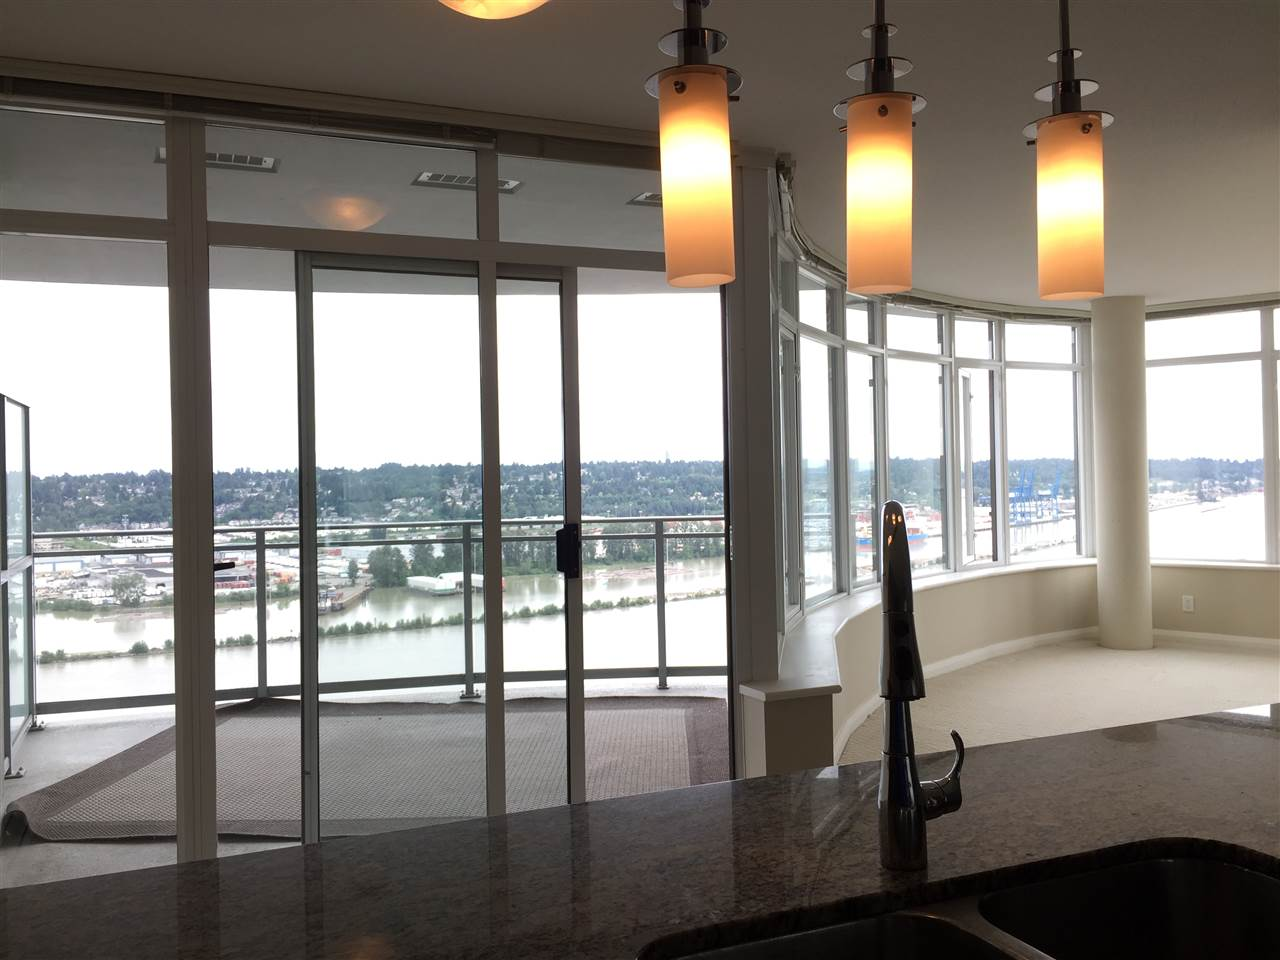 Marinus of the Plaza 88 Project just on top of the skytrain & shopping. Large 2 bedroom plus a den corner suite & a large 148 sq ft balcony with a view of the river. Stainless steel appliances & granite countertop. fast indoor access to skytrain.  Oct 22 sunday 2 pm open